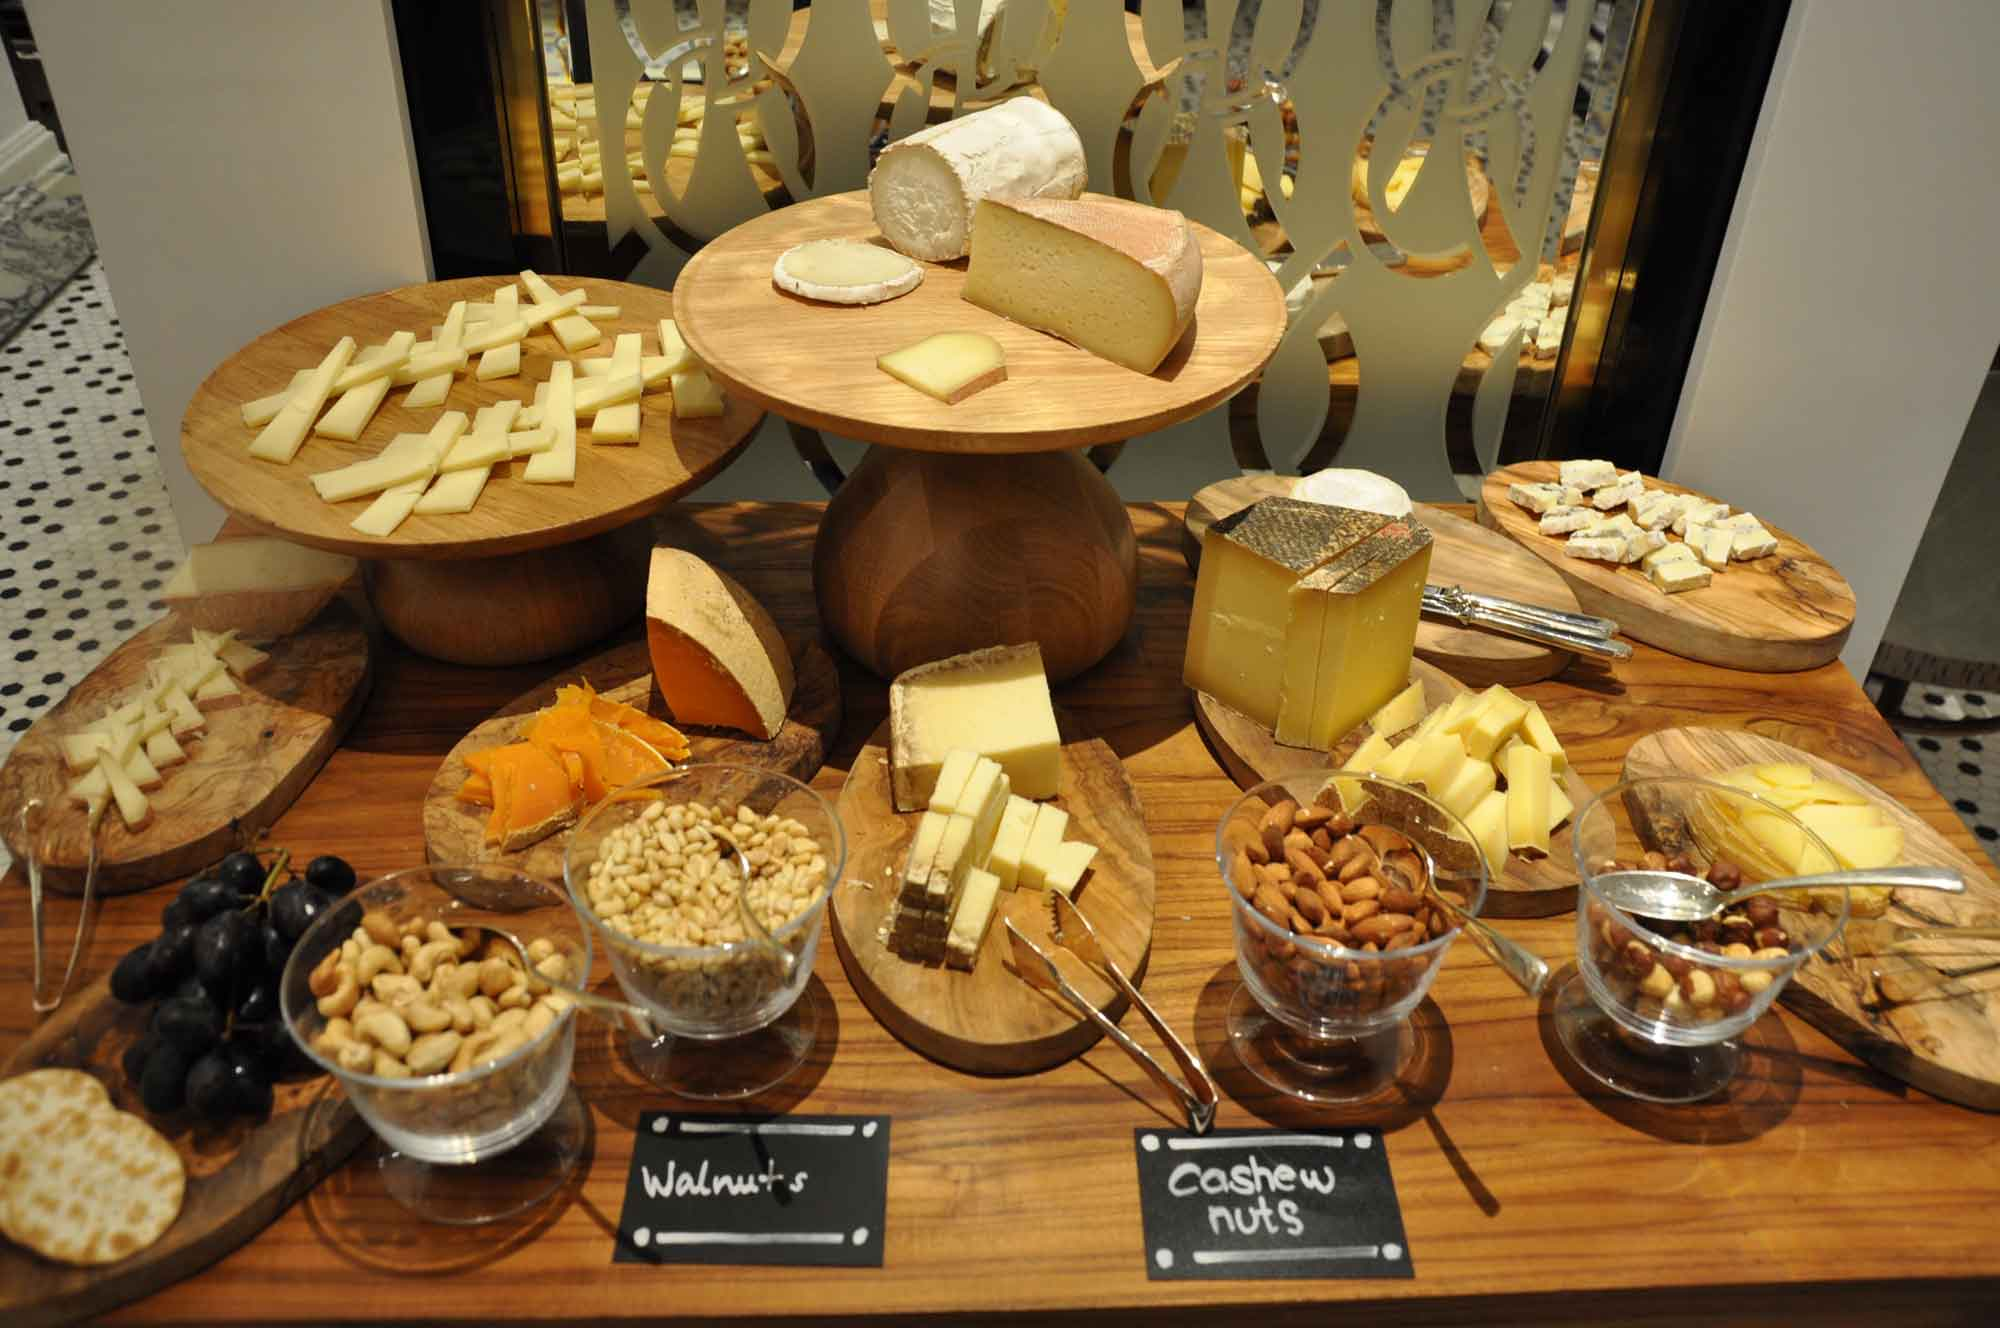 Ritz-Carlton Cafe Macau cheese and nuts